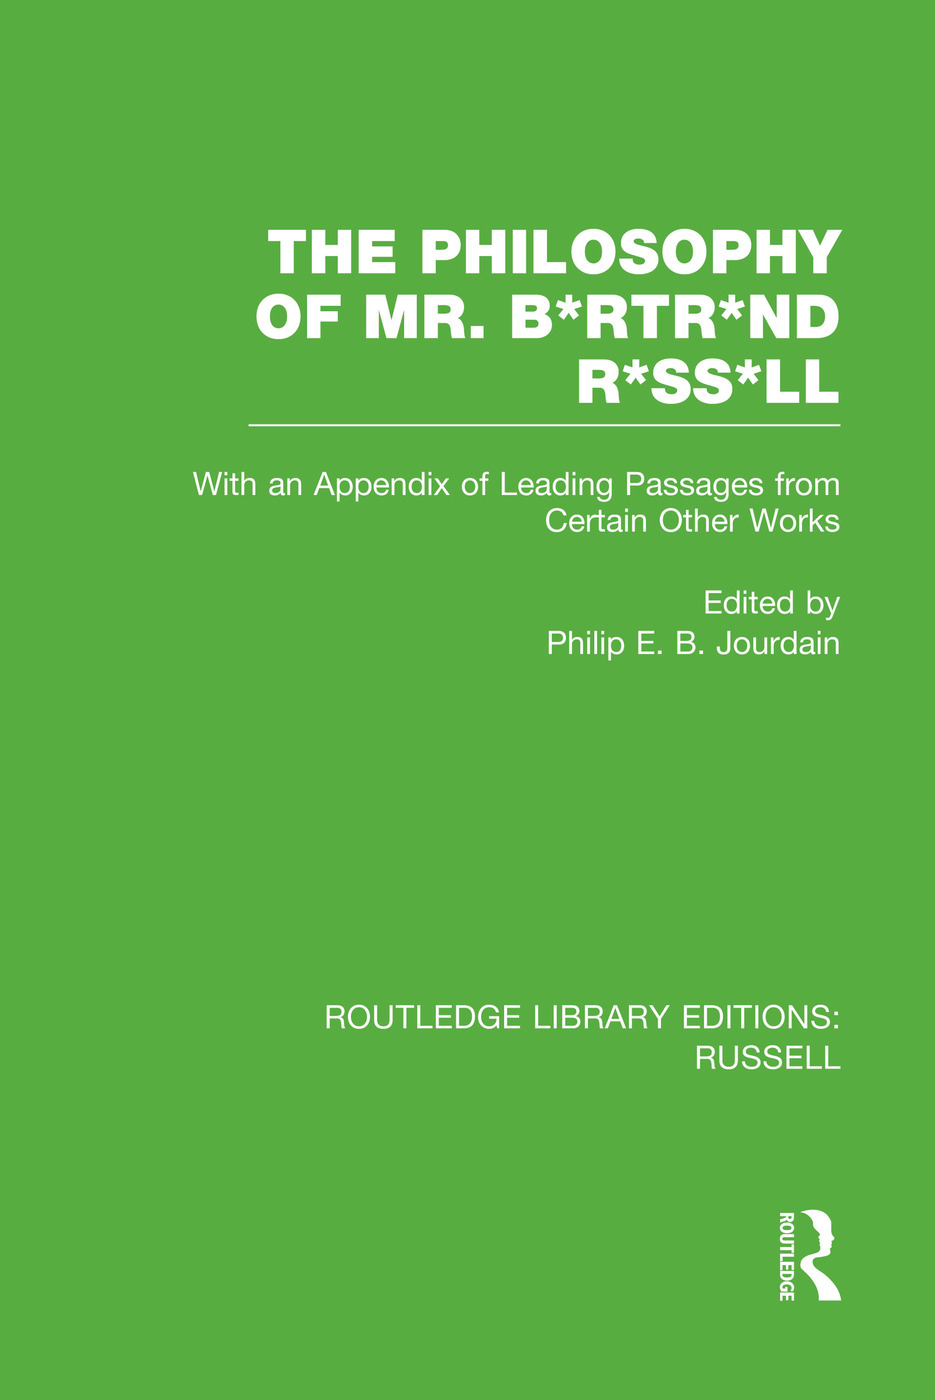 The Philosophy of Mr. B*rtr*nd R*ss*ll: With an Appendix of Leading Passages from Certain Other Works. A Skit. book cover